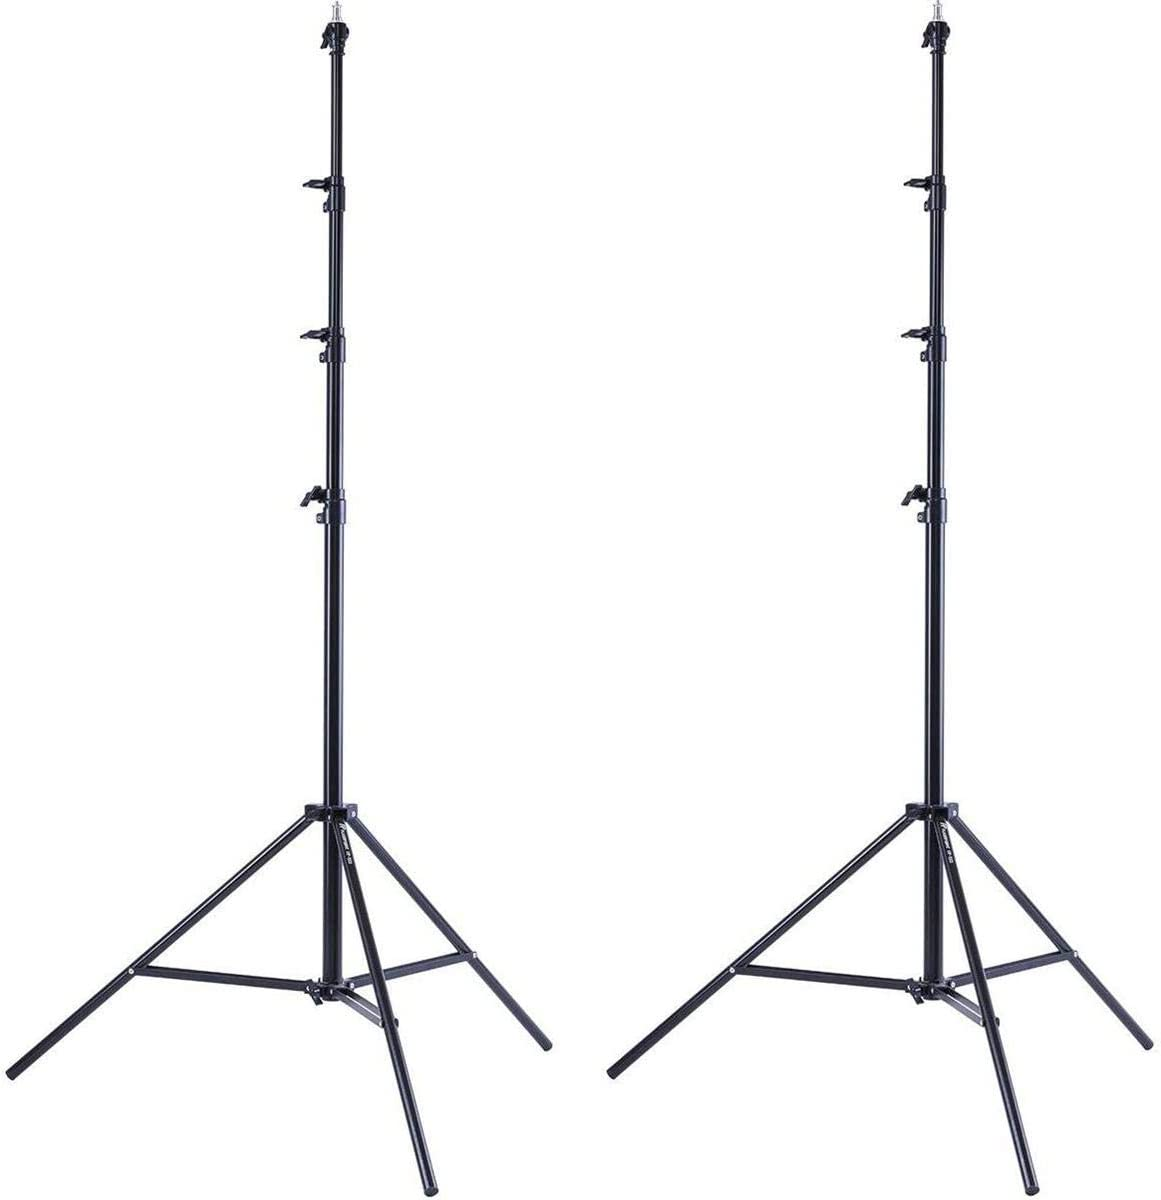 Flashpoint 2X Pro Air-Cushioned Heavy-Duty Light Stand Black, 13